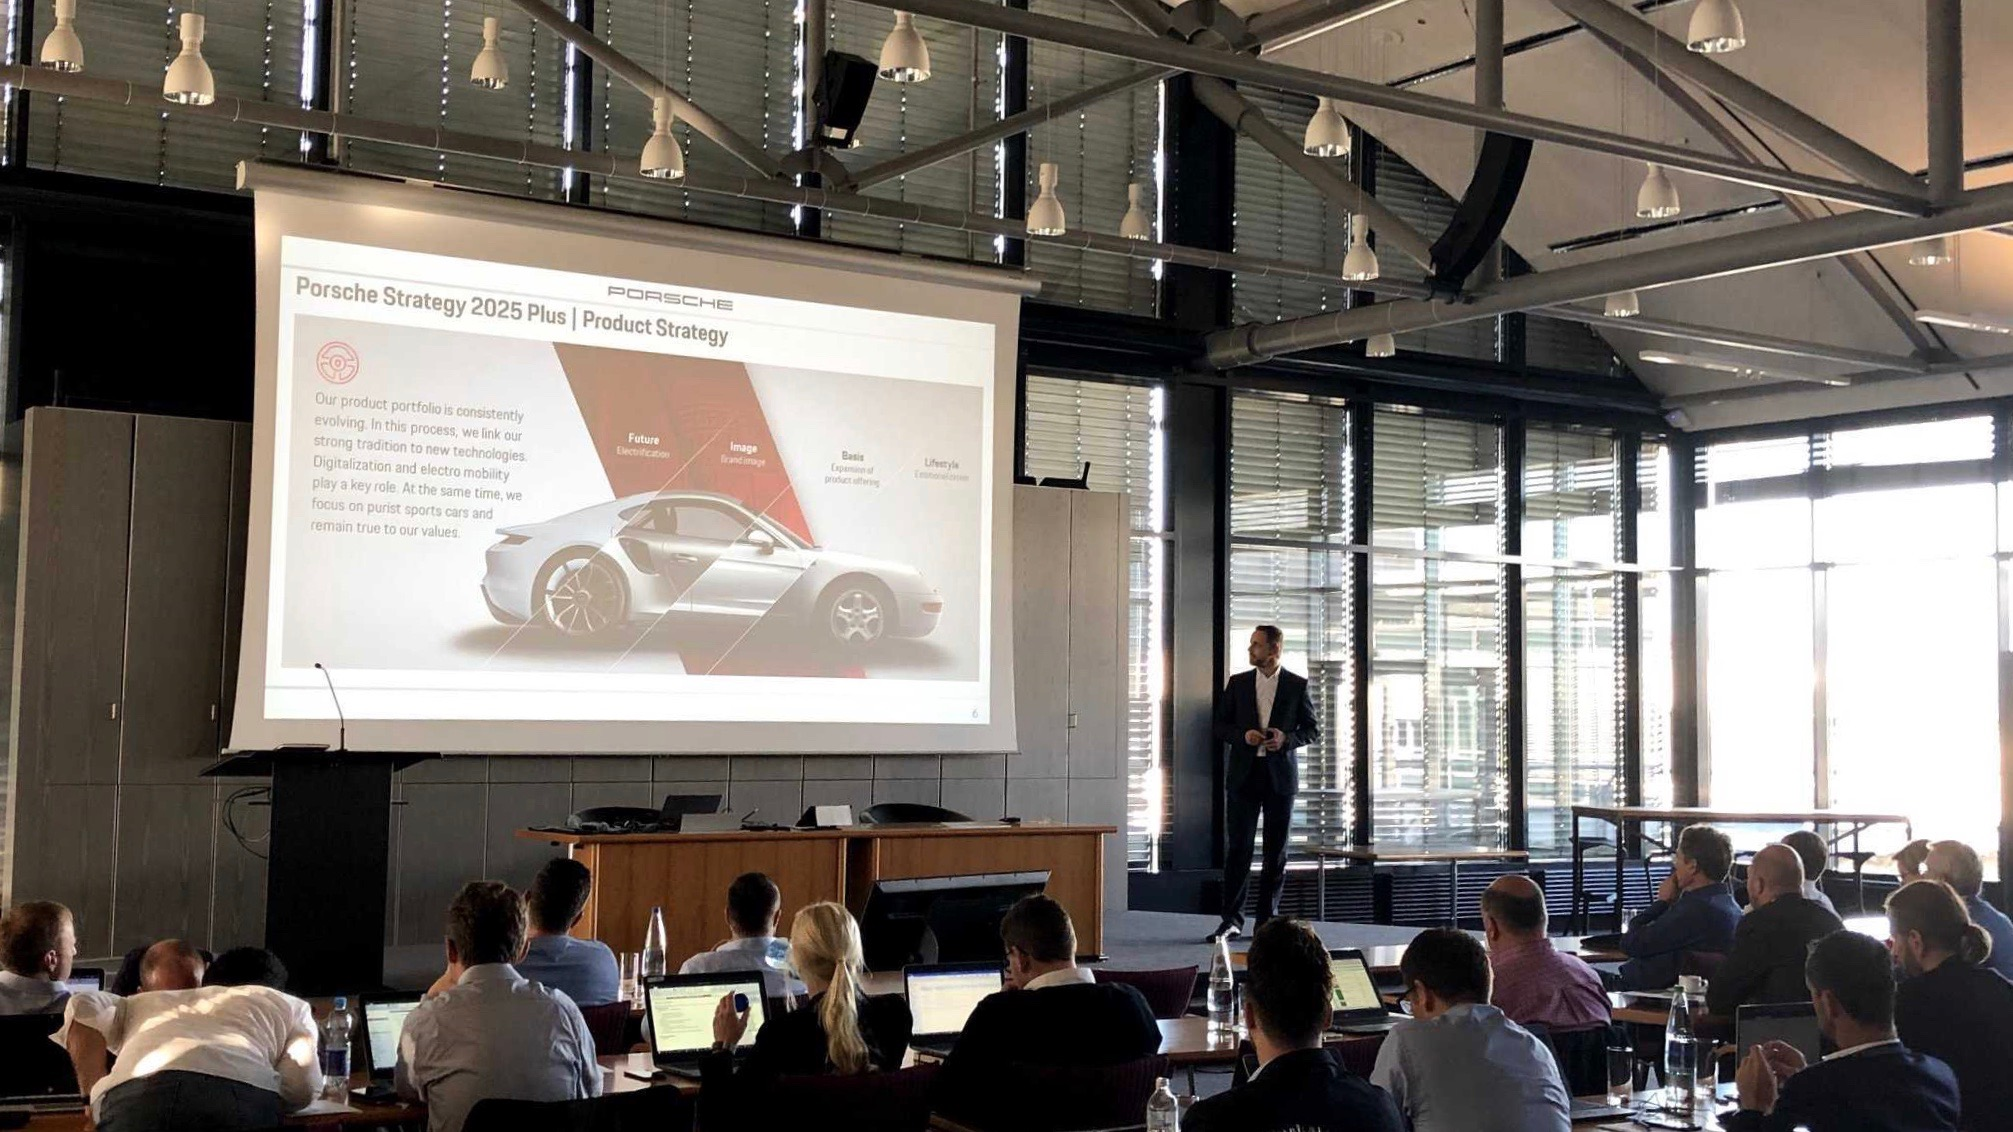 Cihan Sügür, IT Demand Manager, Digital Council, 2019, Porsche AG